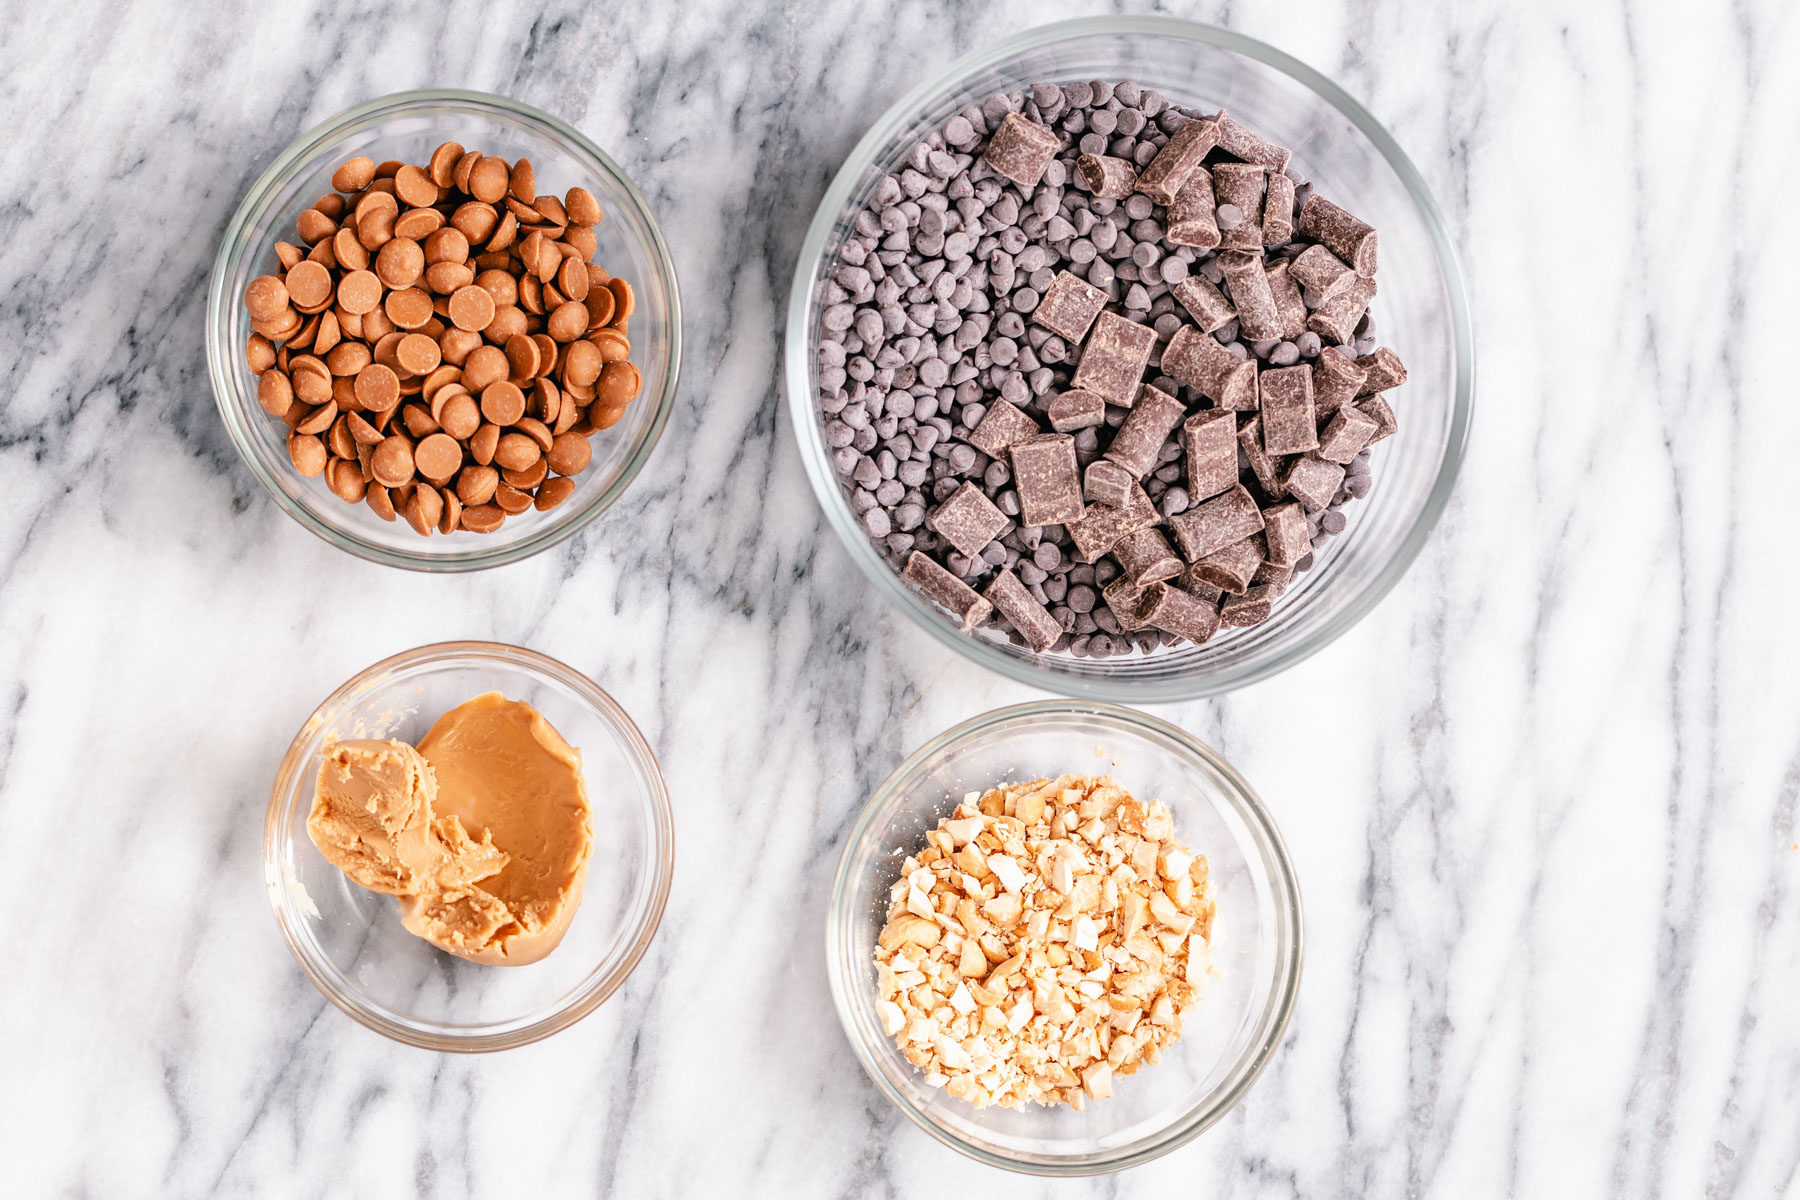 ingredients used for making vegan peanut butter chocolate bark